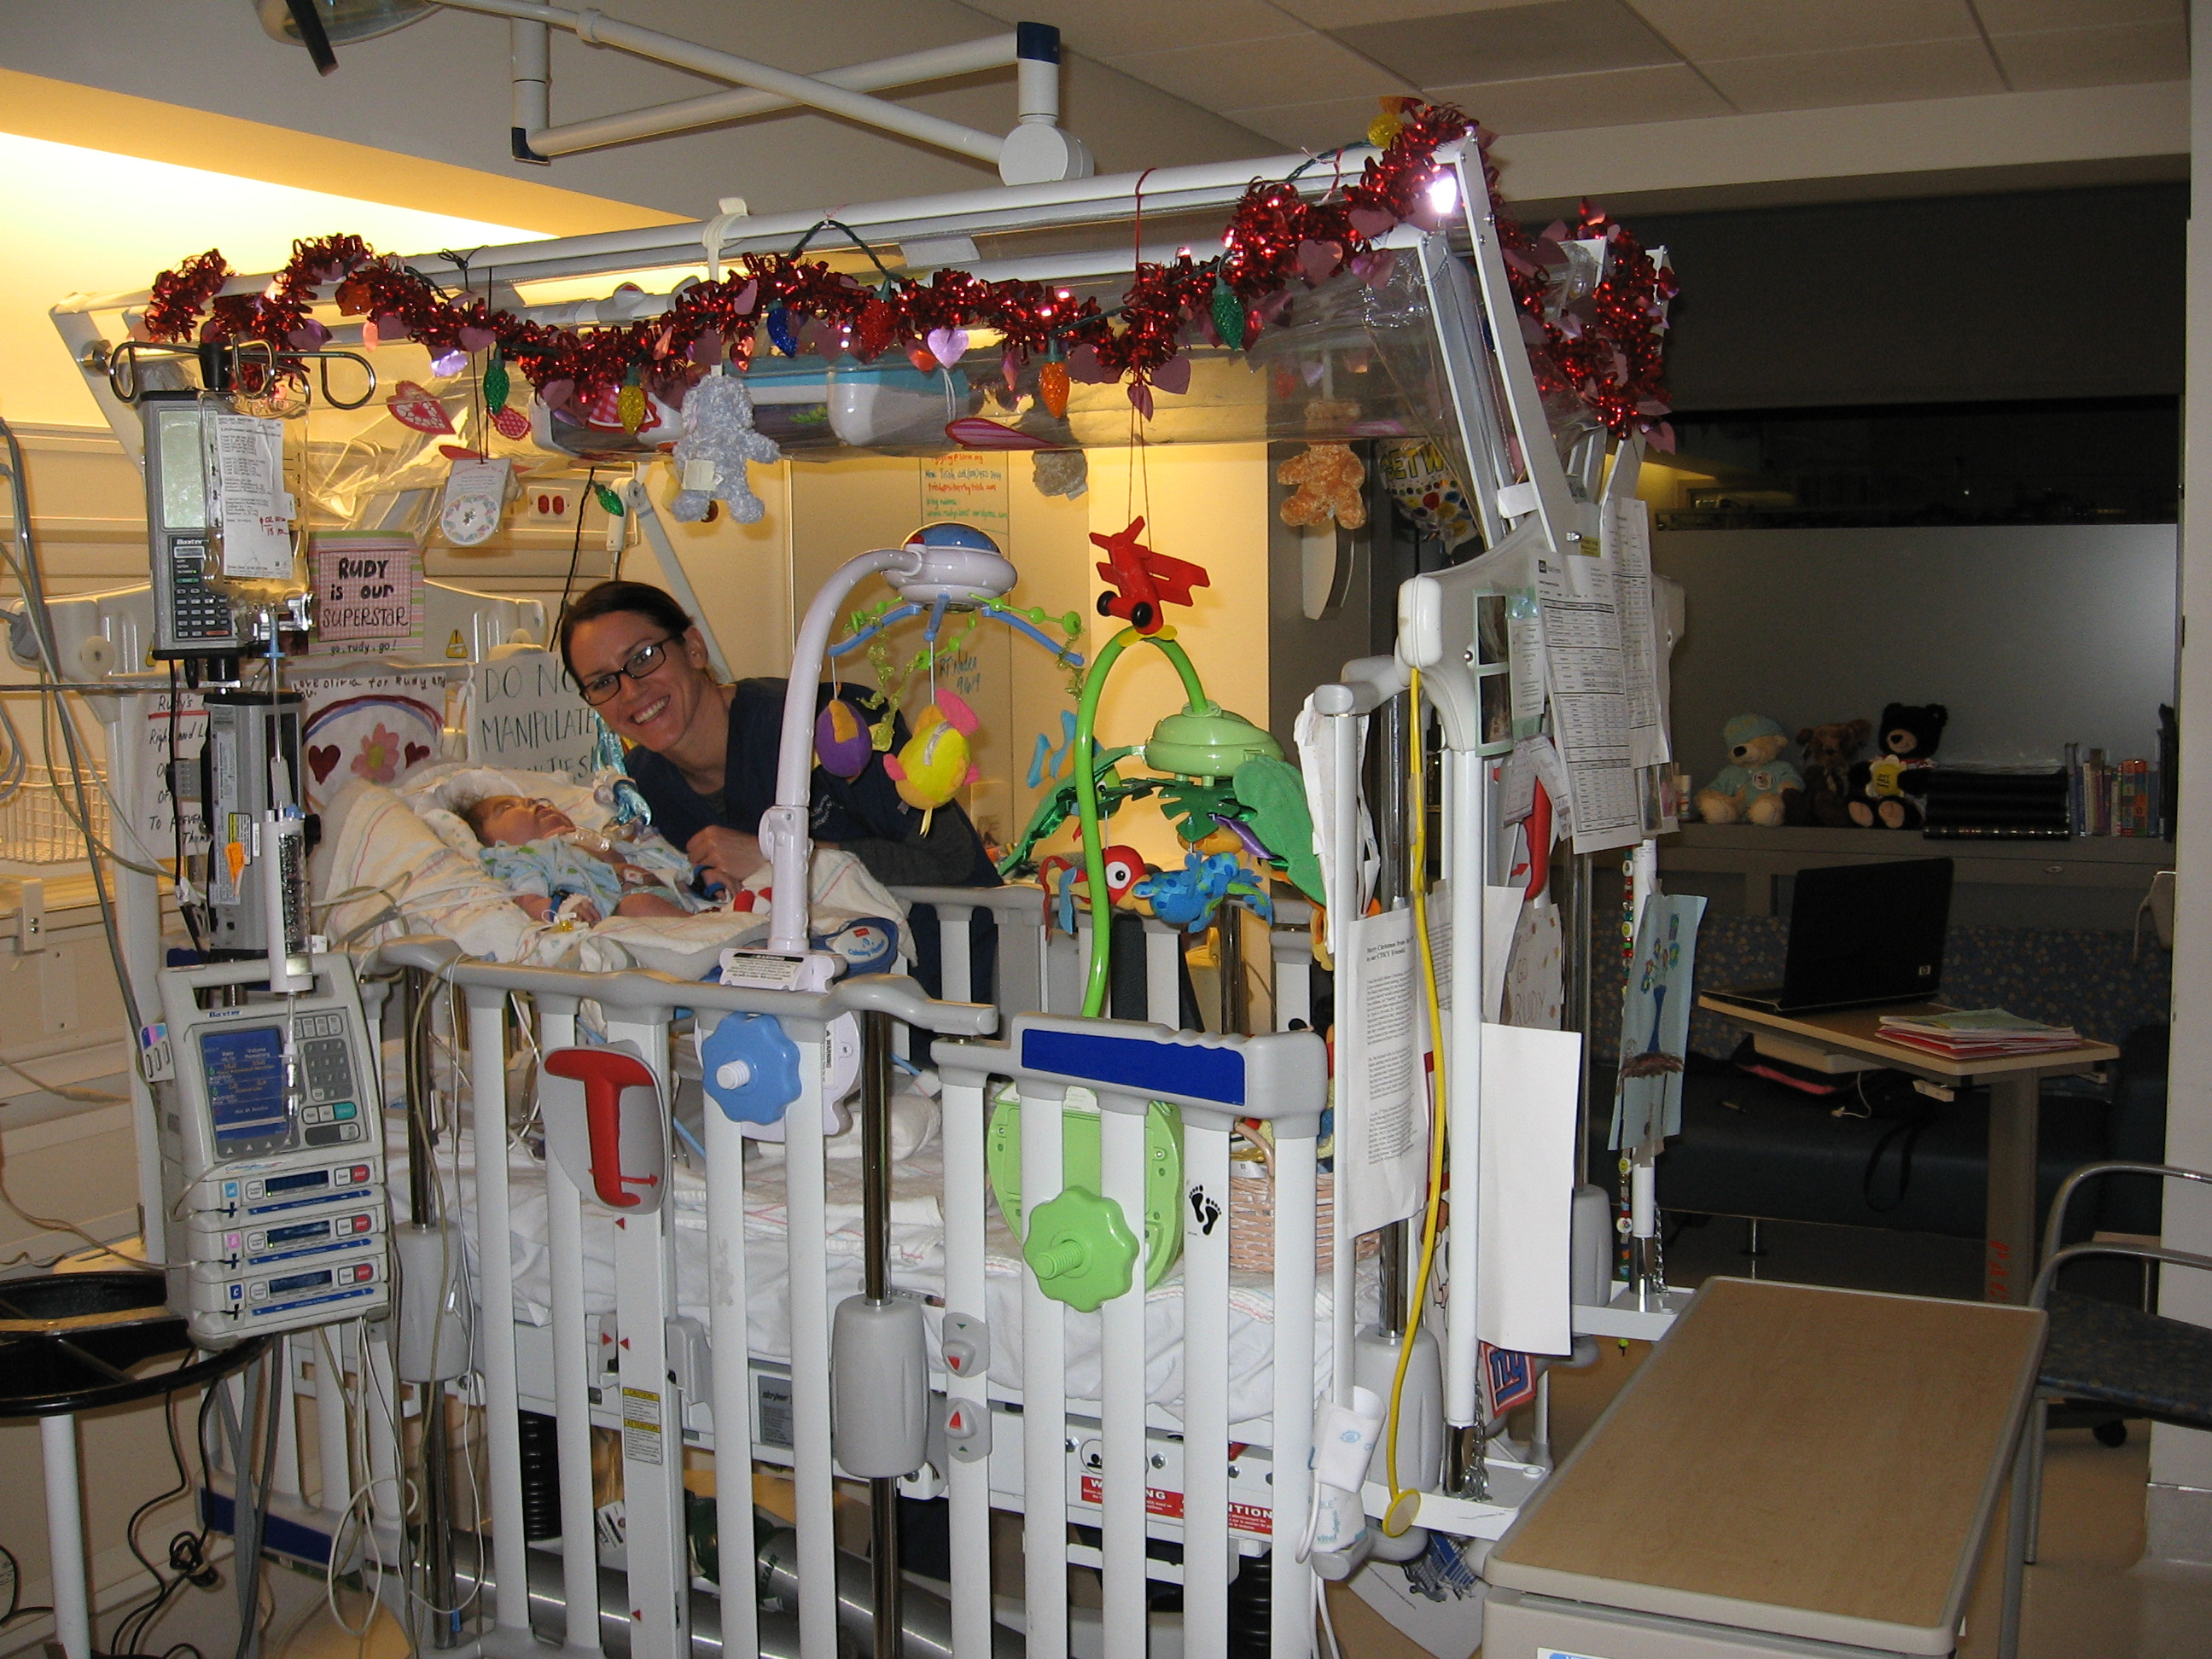 Rudy's new PICU room - Check out Nurse Amy!